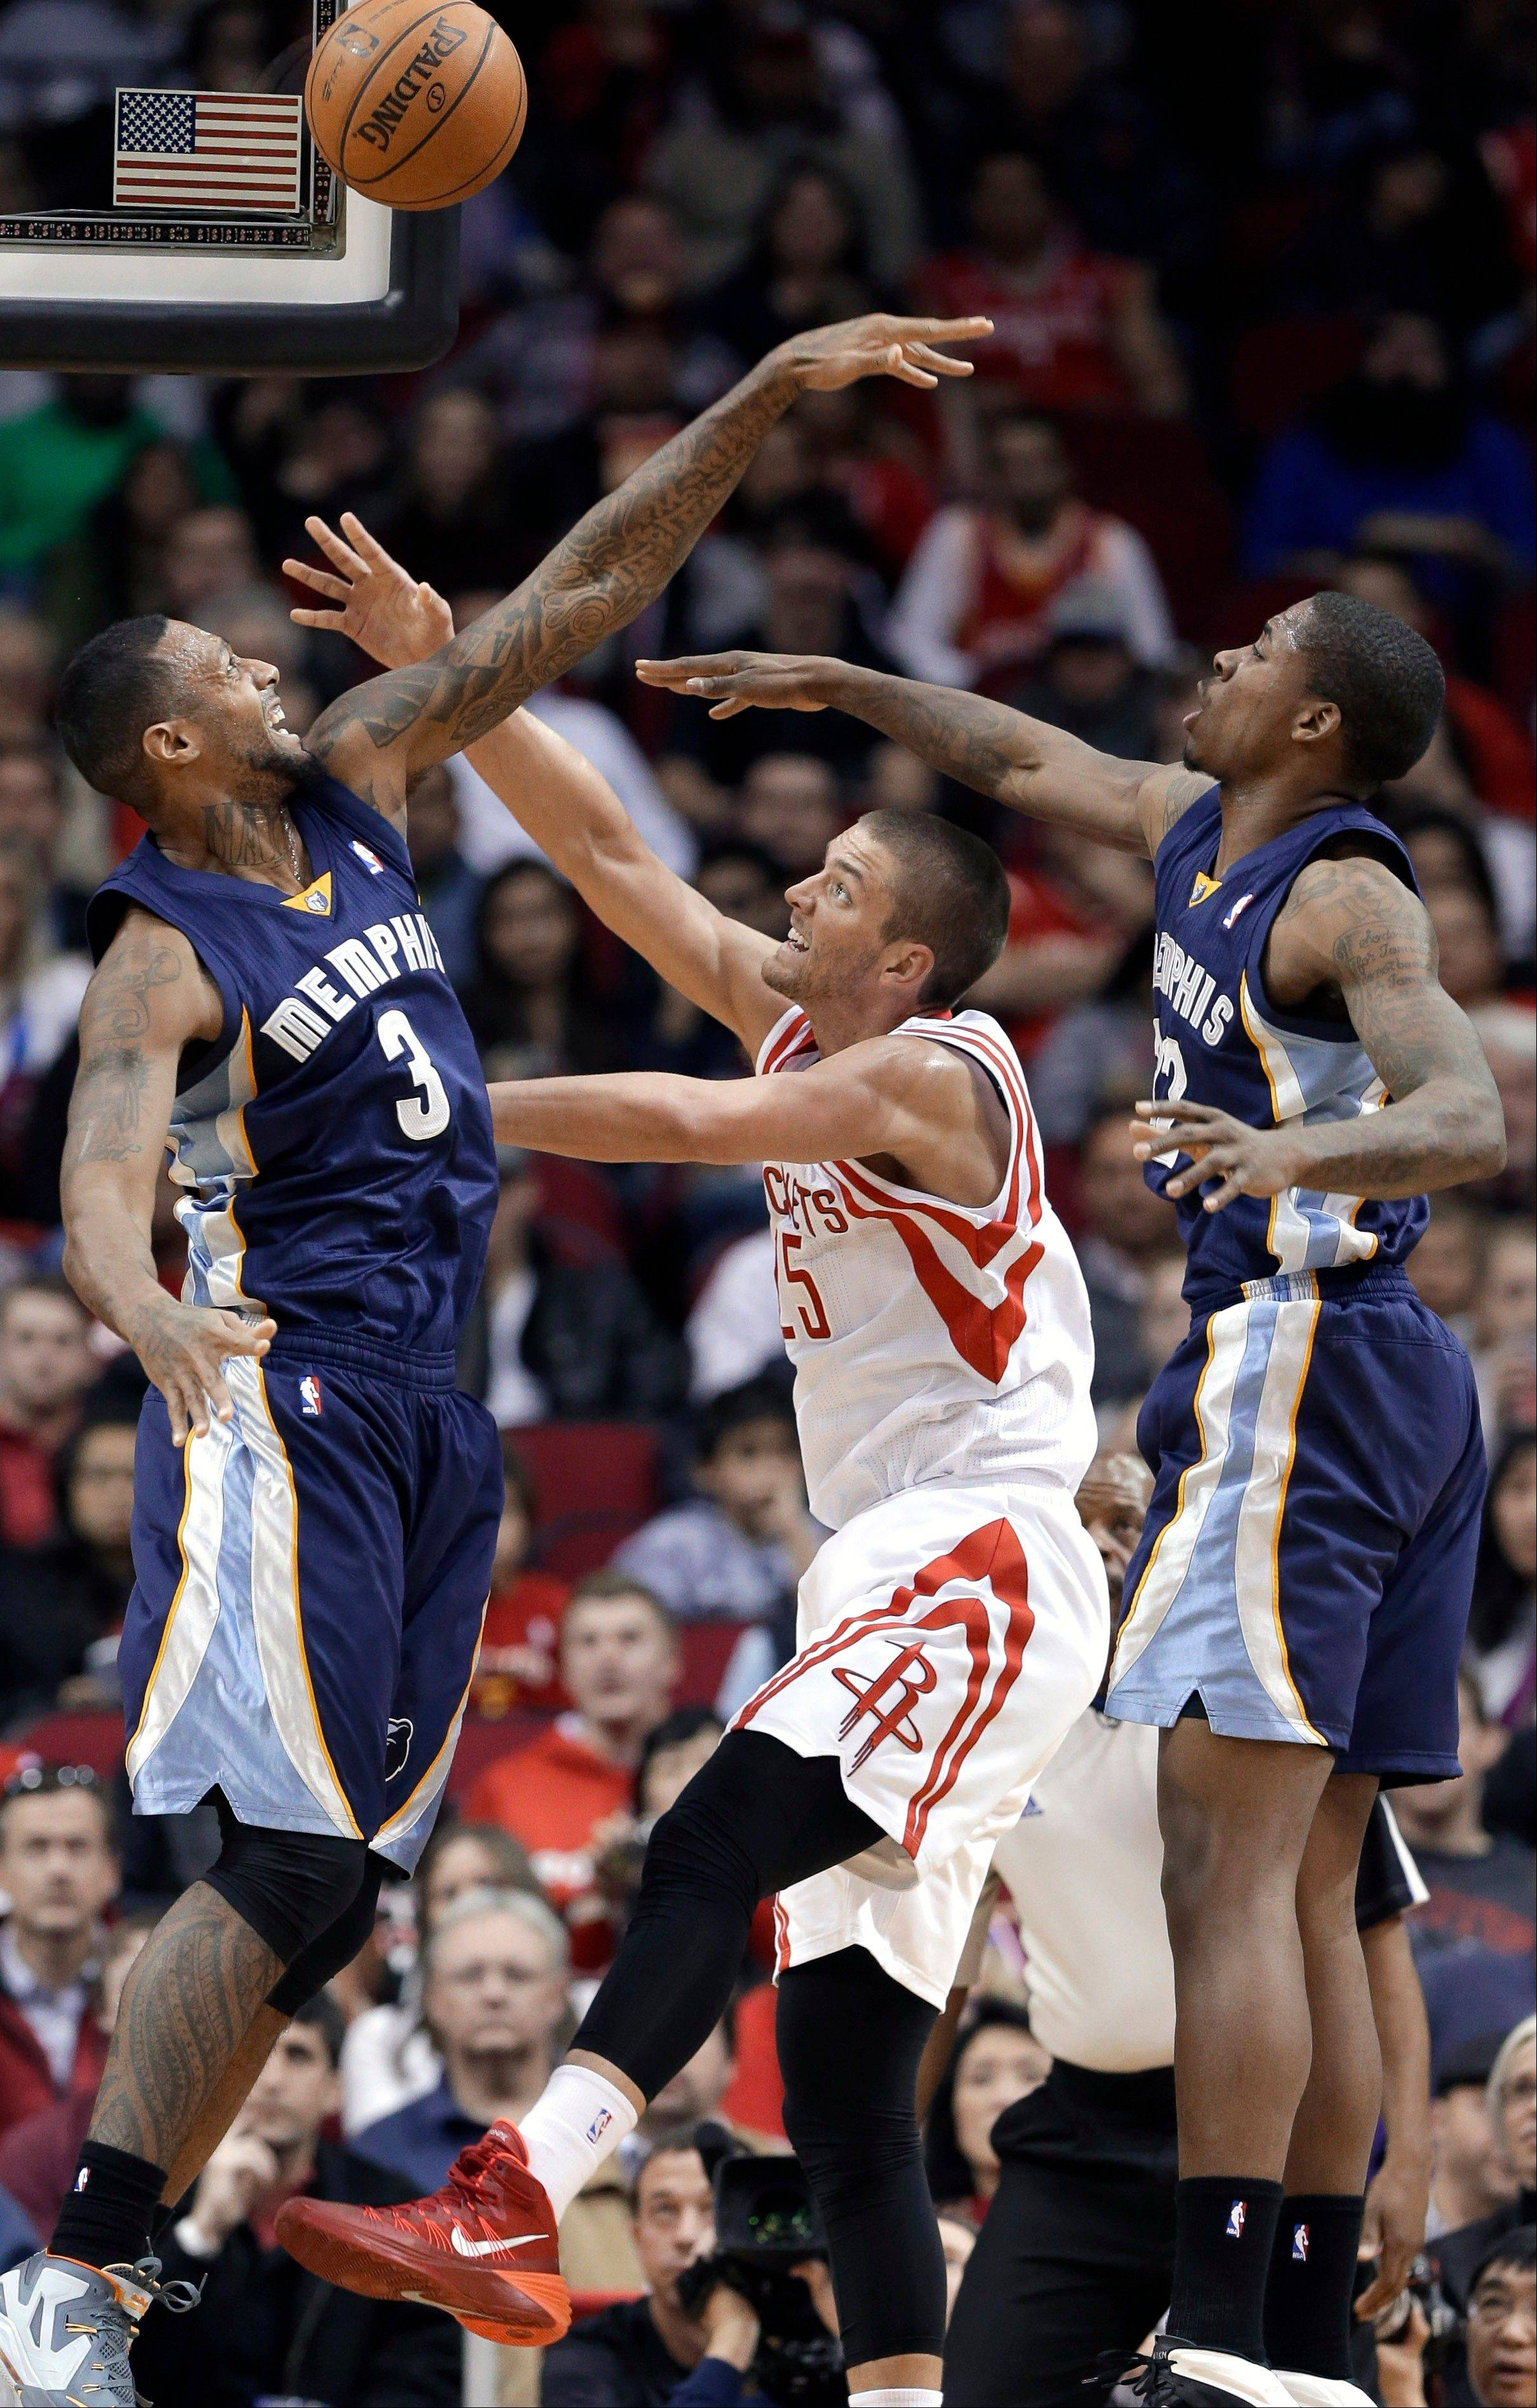 Houston Rockets' Chandler Parsons (25) is double-teamed by Memphis Grizzlies' James Johnson (3) and Ed Davis during the first half of an NBA basketball game Friday, Jan. 24, 2014, in Houston.